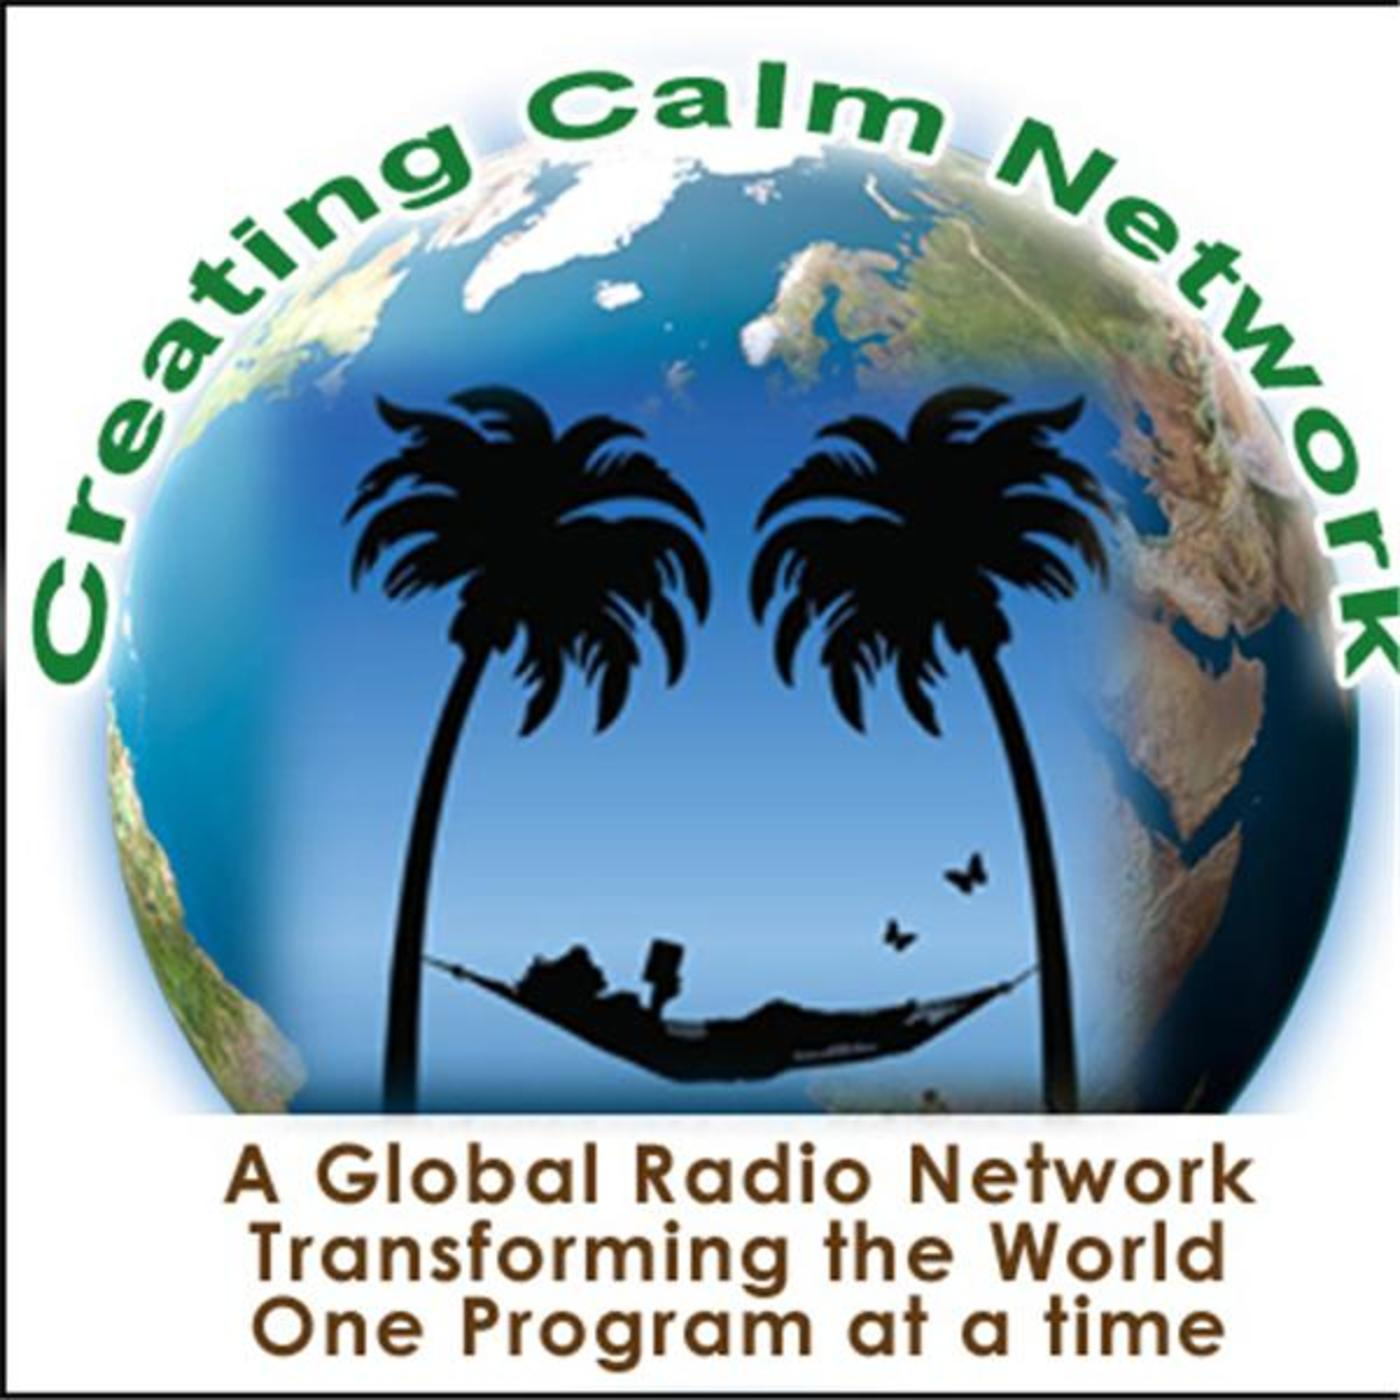 Creating Calm Network 1